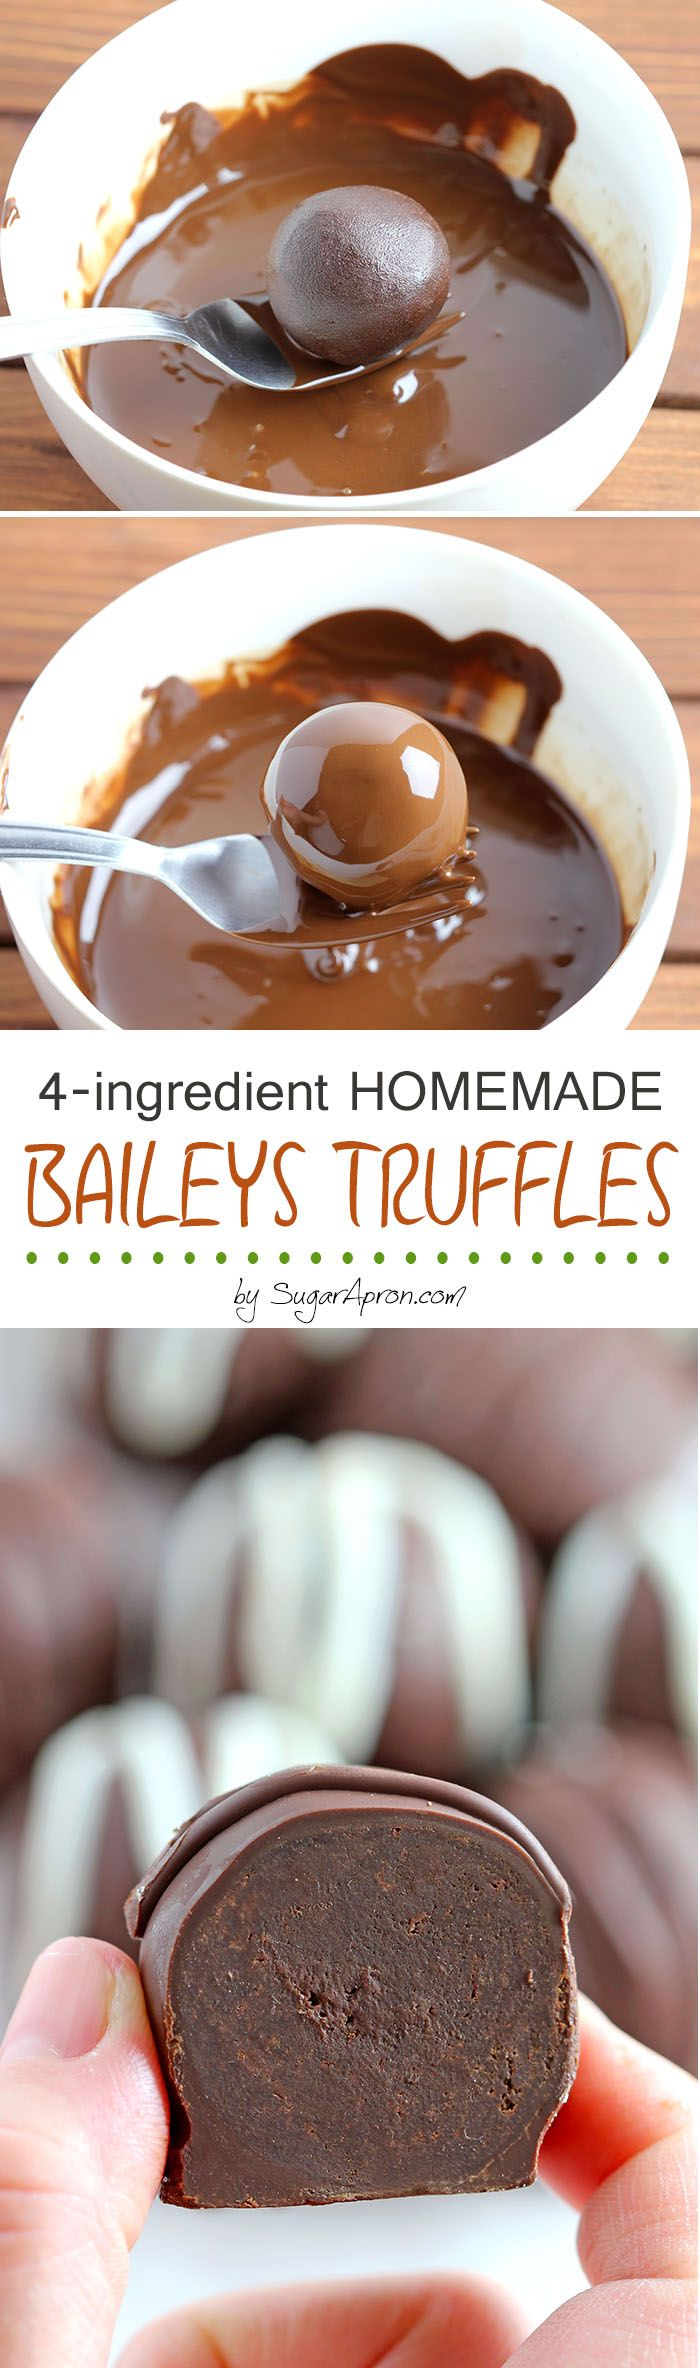 These 4 ingredient, Homemade Baileys Truffles are the perfect gift for family or friends....or the yummiest little sneaky late night treat!